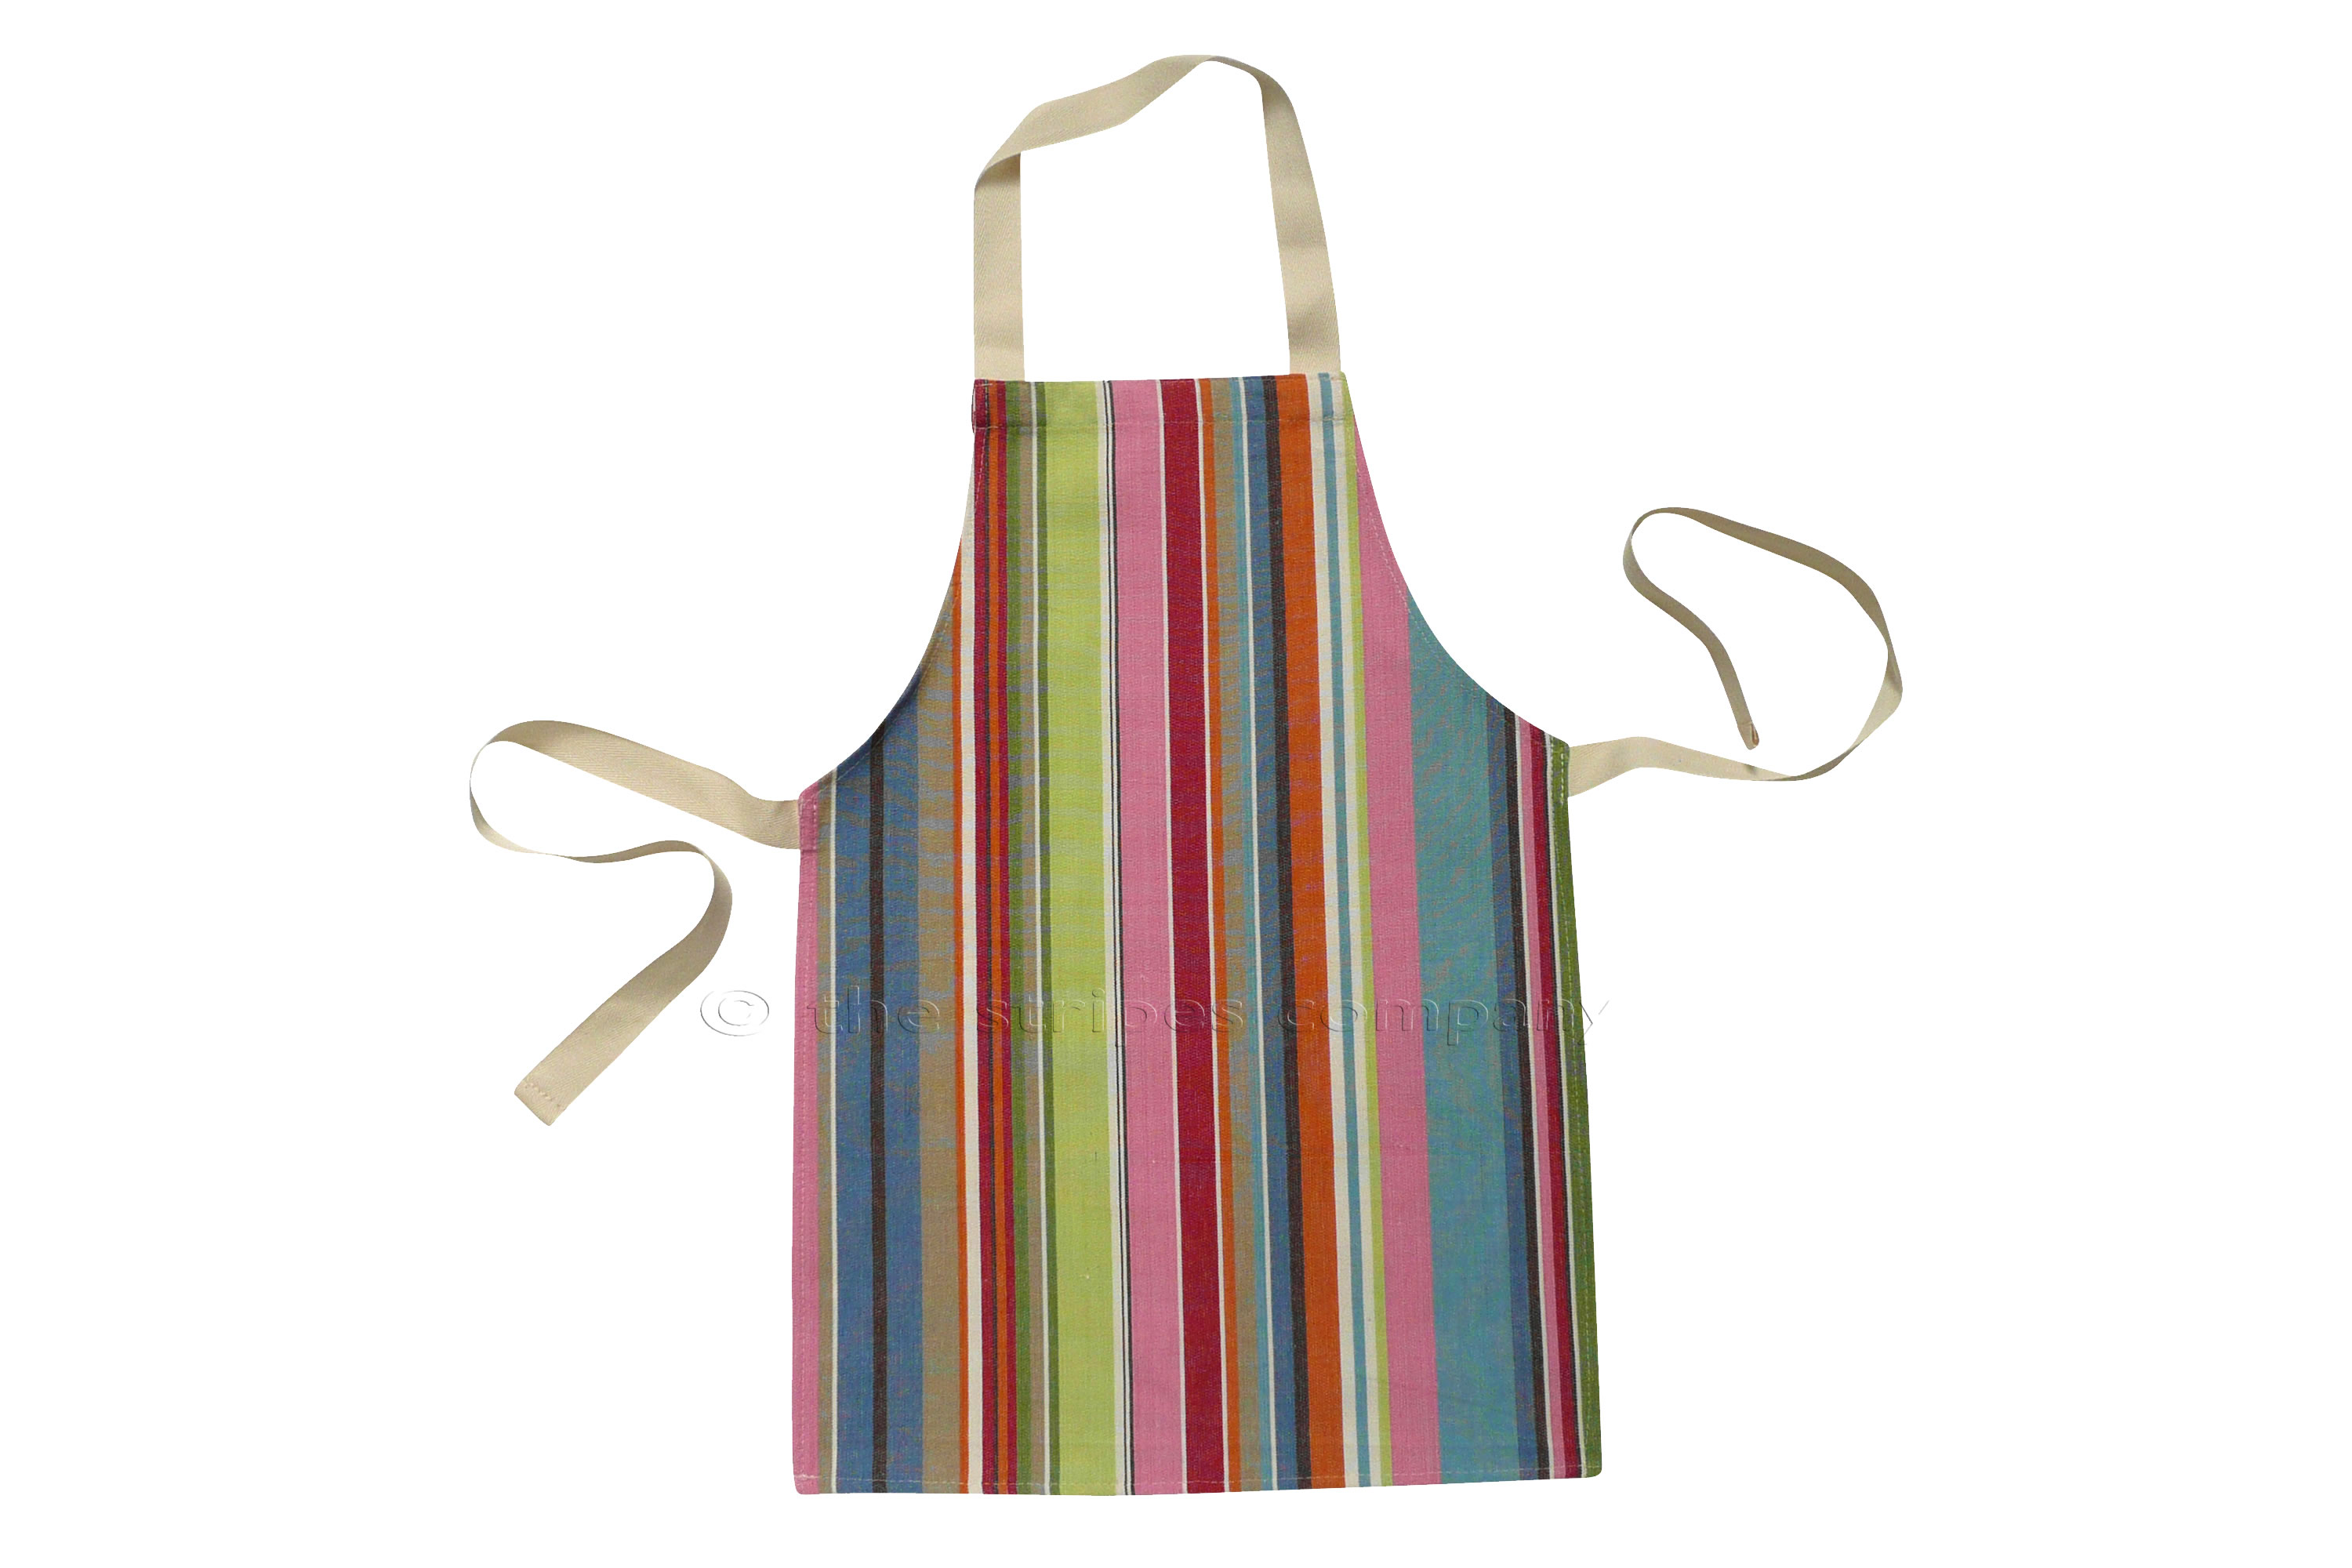 Blue Striped Kids Aprons | Aprons for Children - Blue Pink Turquoise Stripes